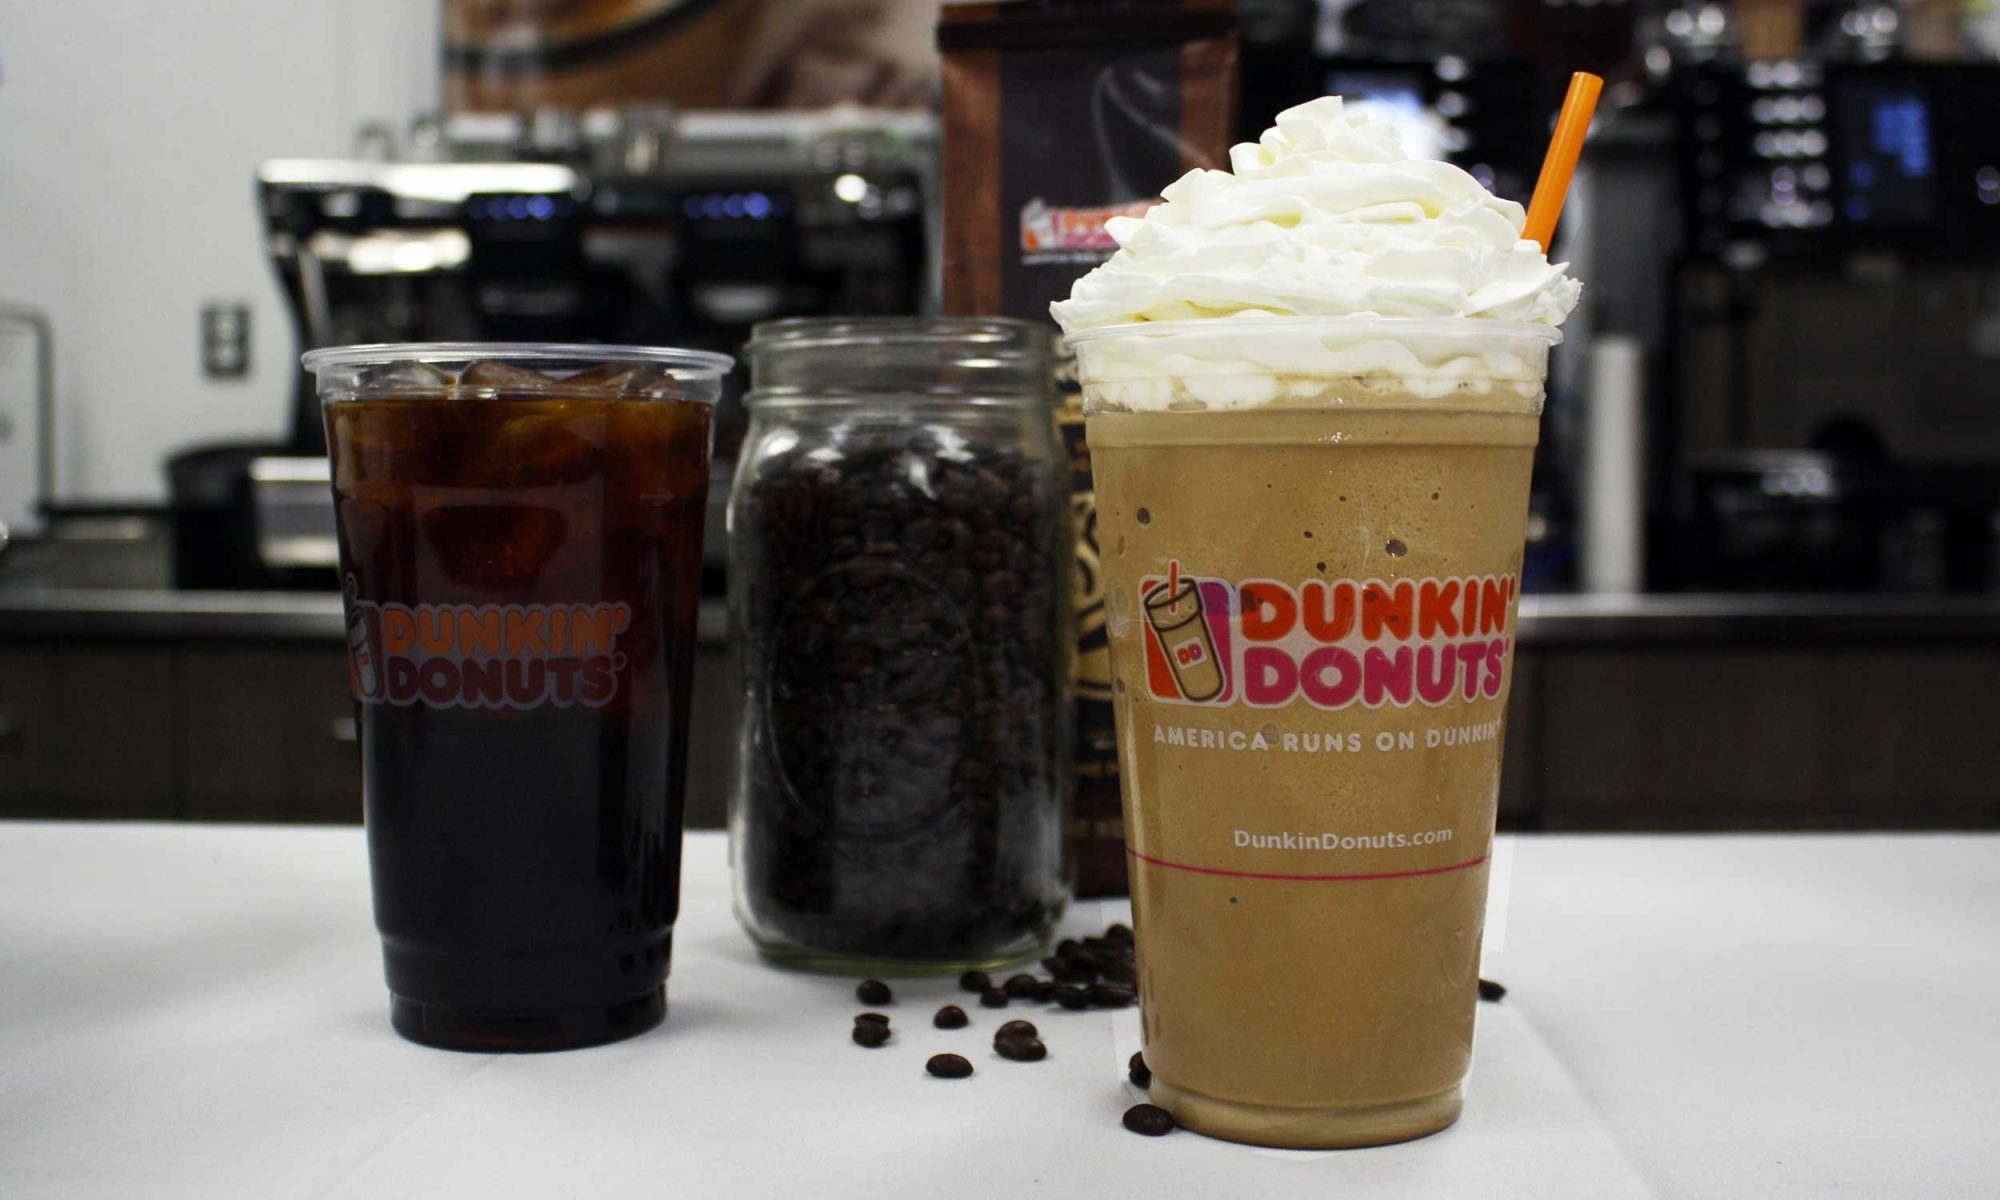 EC: The New Dunkin' Donuts Frozen Coffee Will Make You Wish It Was Summer